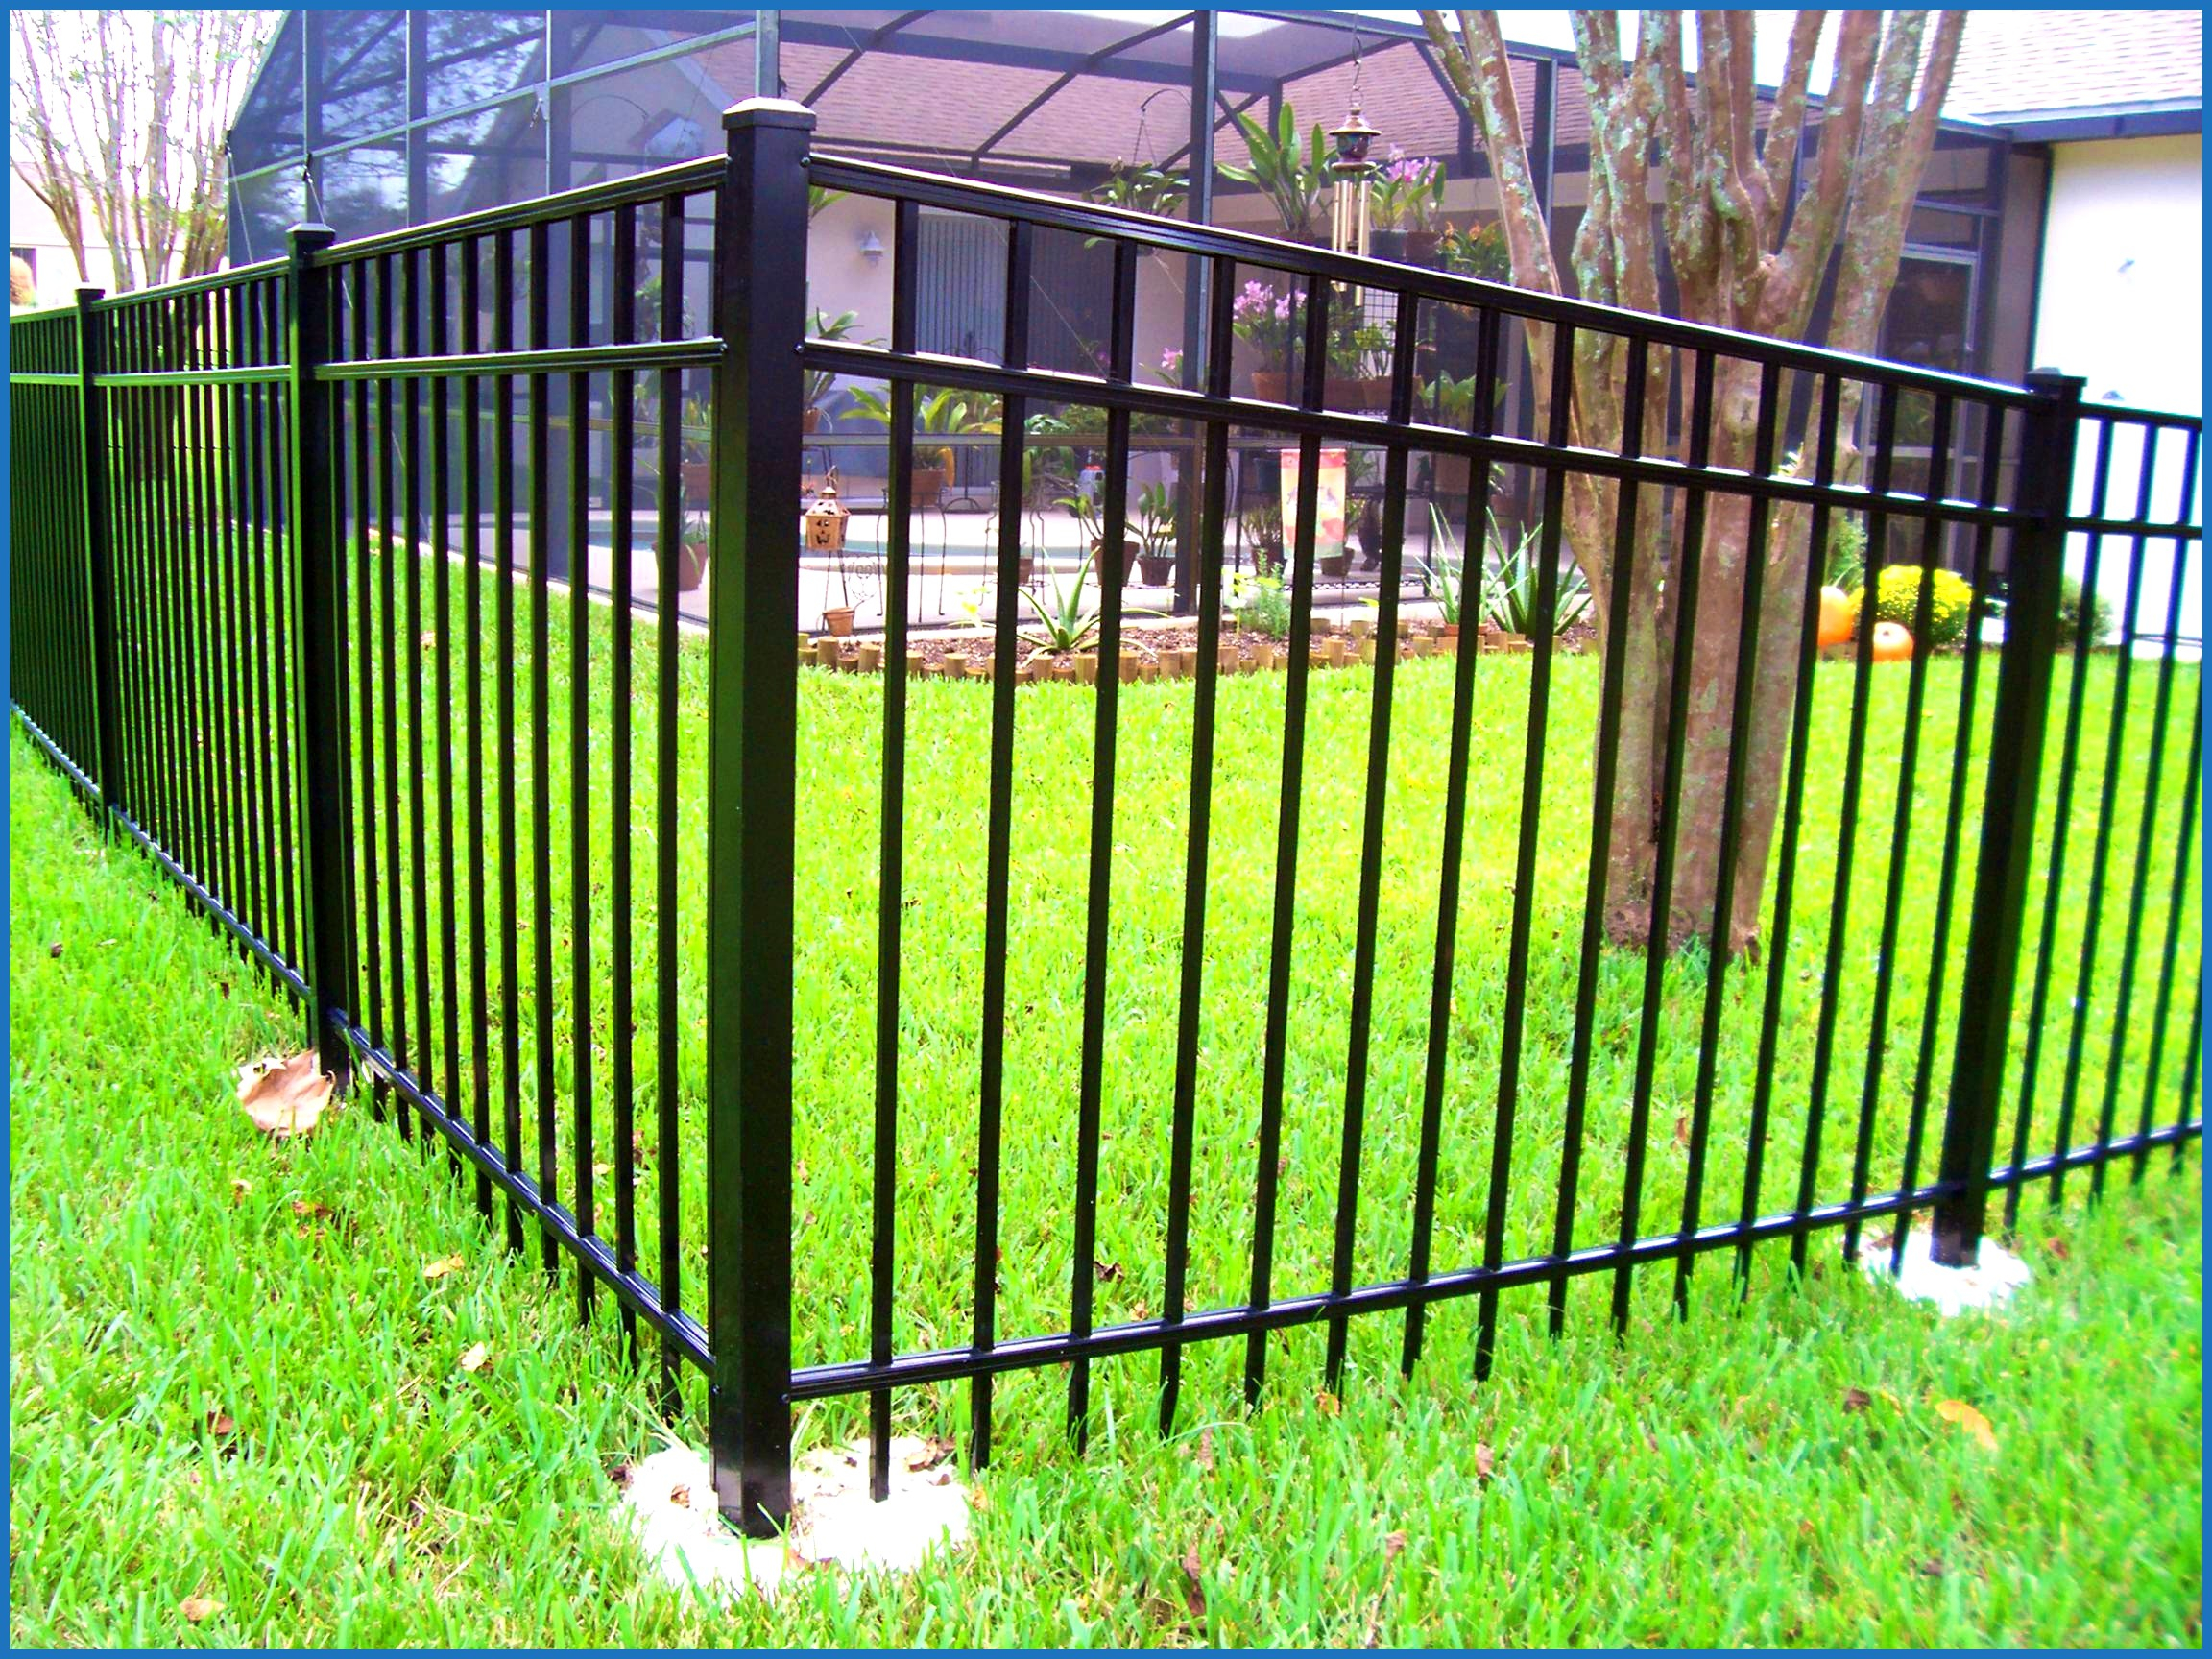 Awesome Ironcraft Fencing Fence Decorativedesignideasideadecor regarding sizing 2304 X 1728